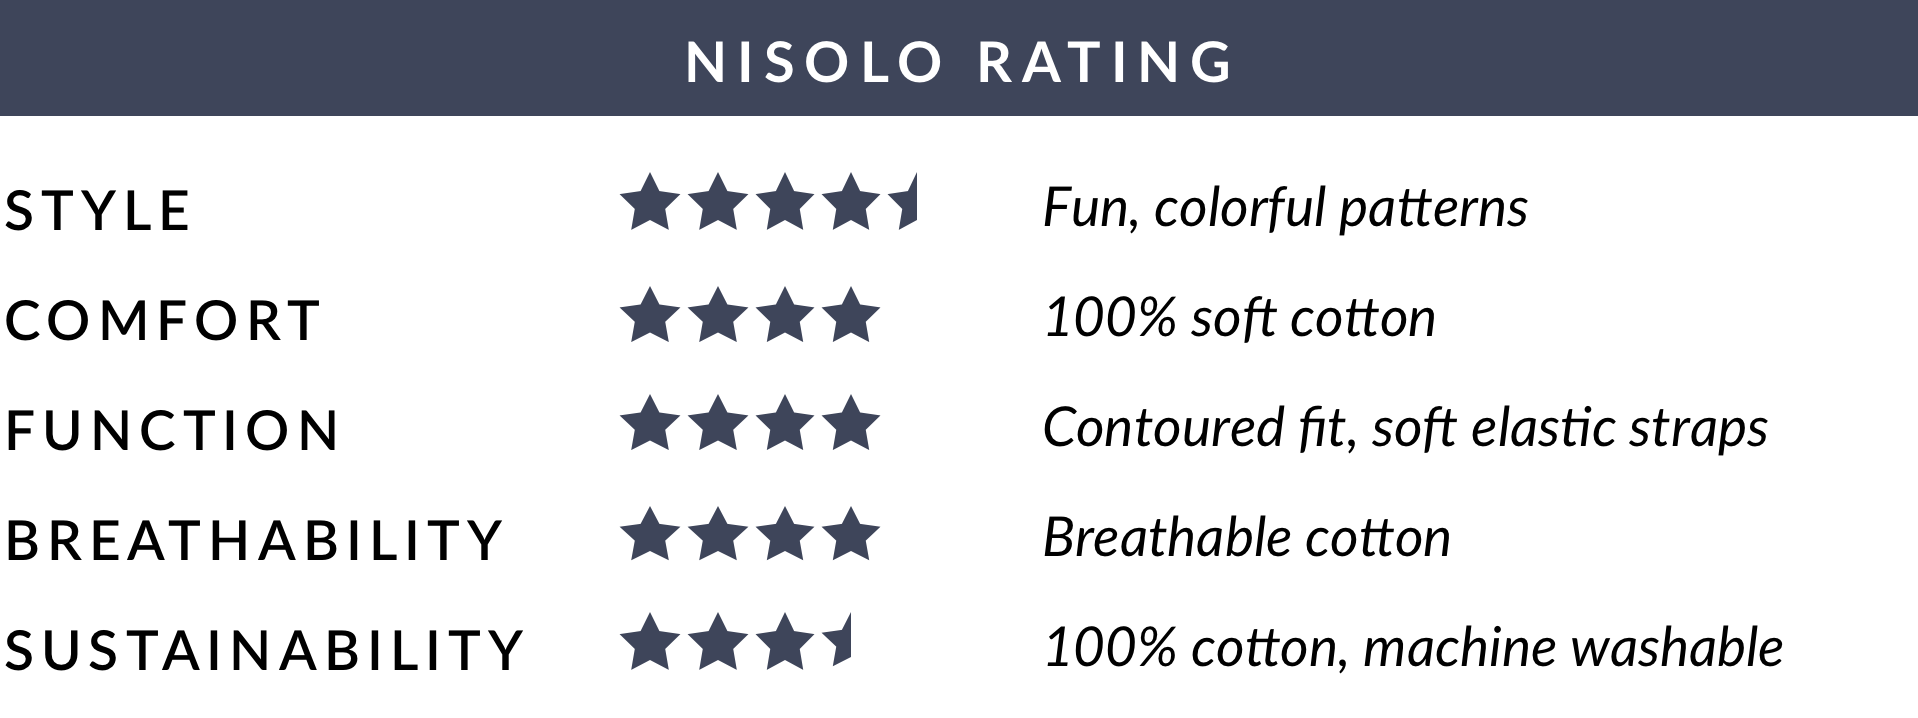 Nisolo Rating of Busy Bees Kids Cotton Mask Medium (6-8 years) - Red Seersucker - Average of 4 out of 5 stars